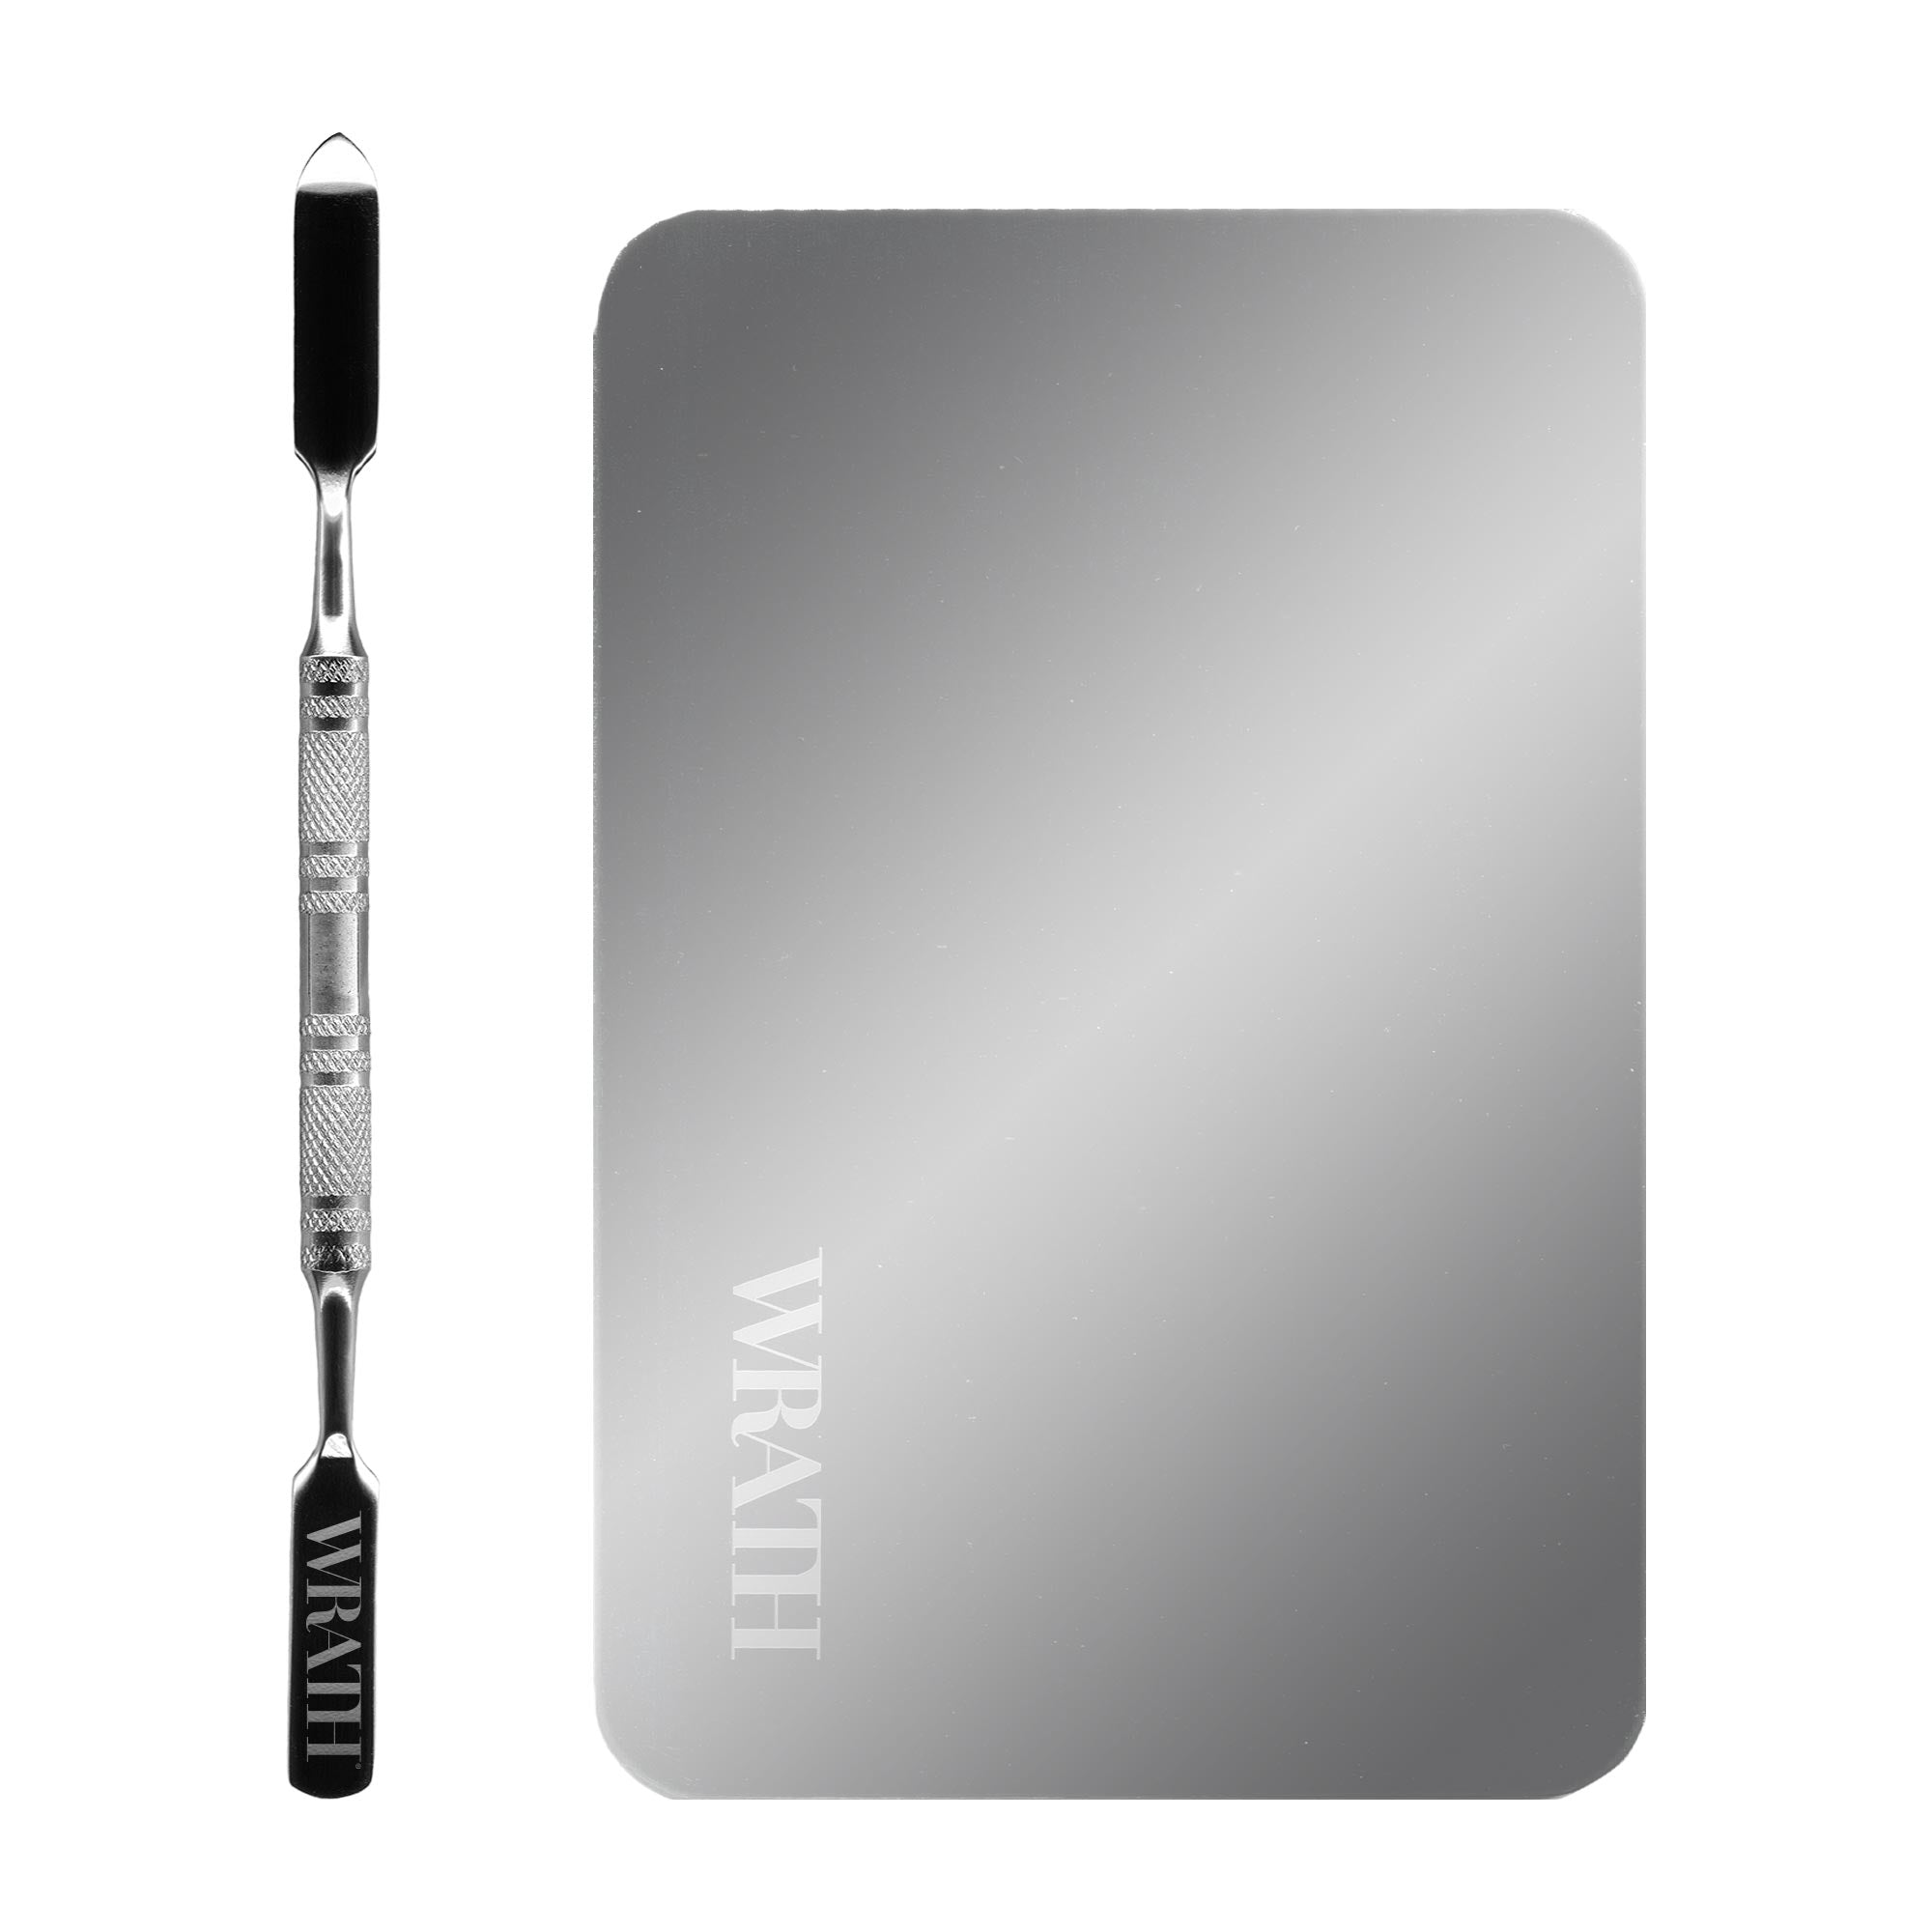 WRATH Compact Stainless Steel Palette & Spatula Set